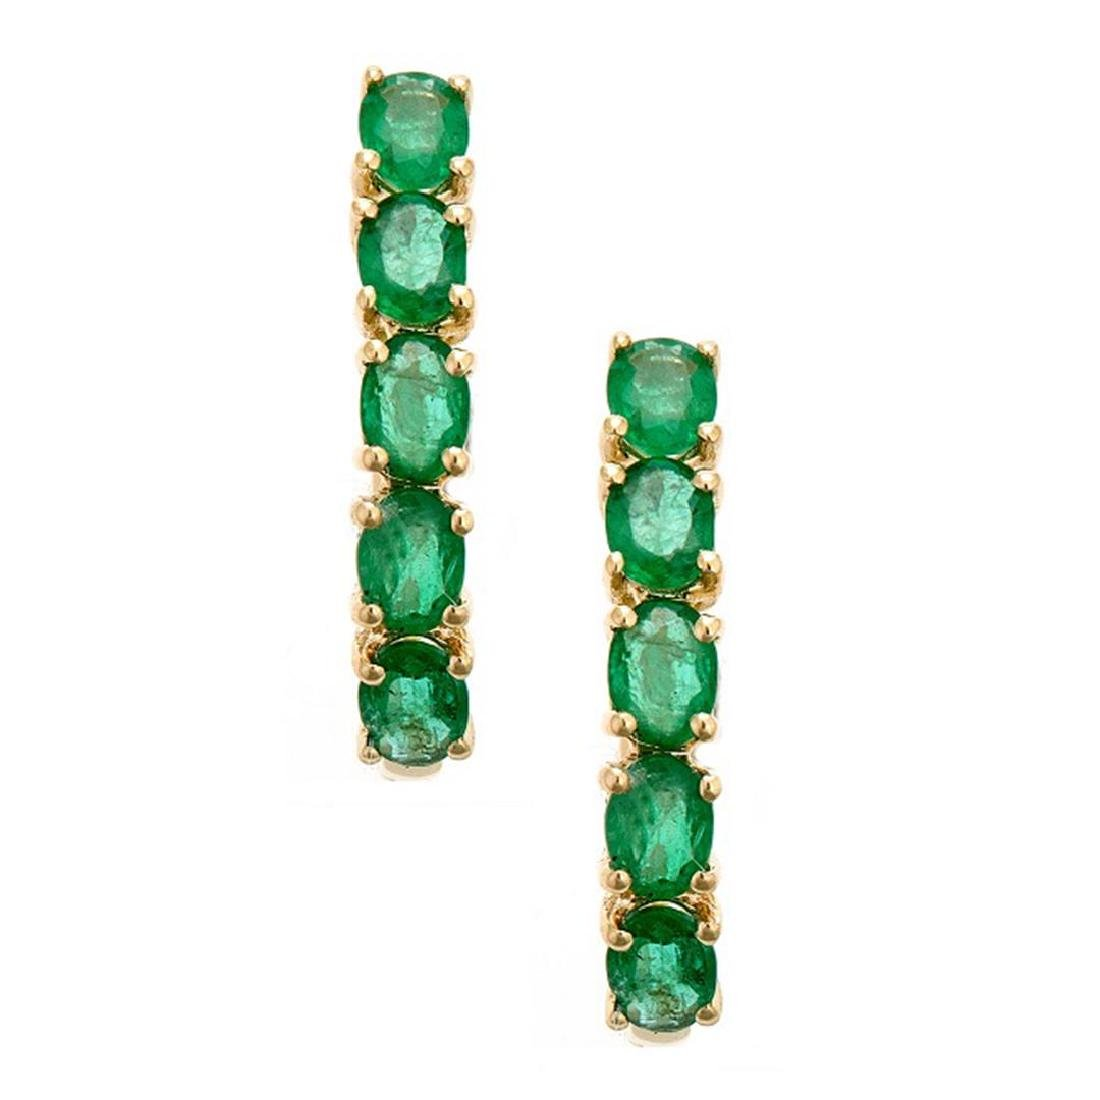 1.57 ctw Emerald Earrings - 14KT Yellow Gold